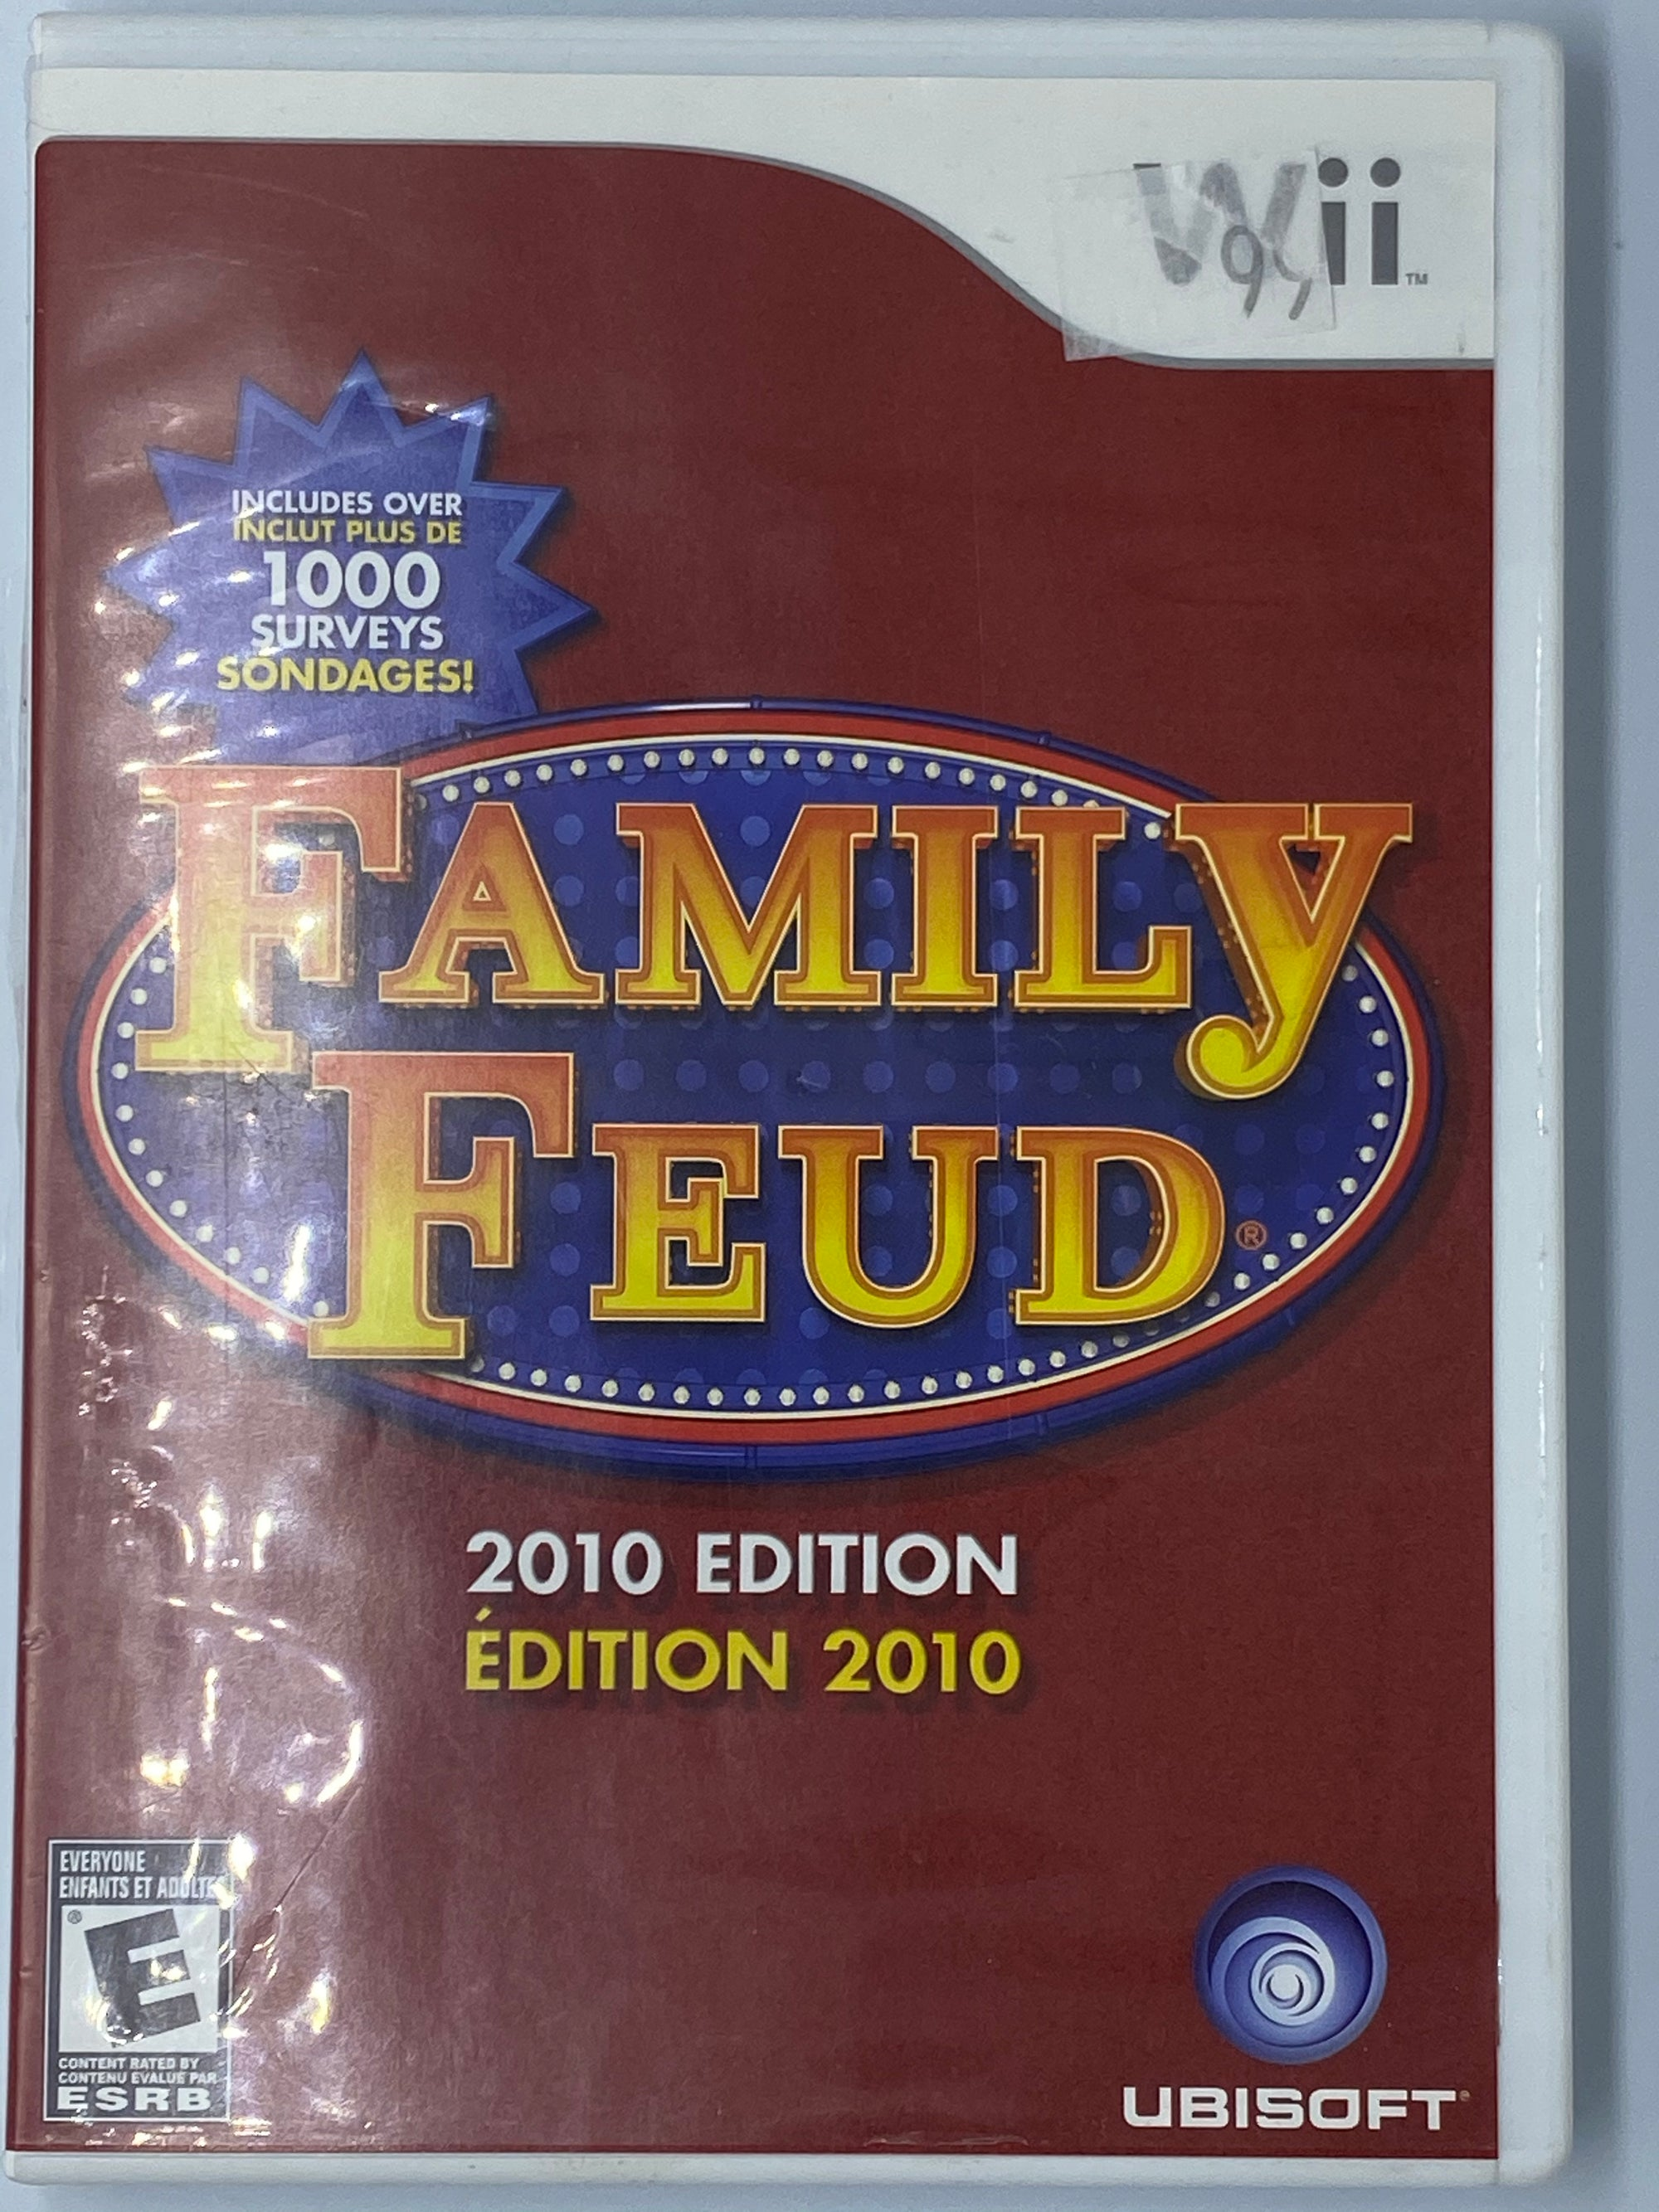 FAMILY FEUD 2010 EDITION - NINTENDO WII USED GAMES